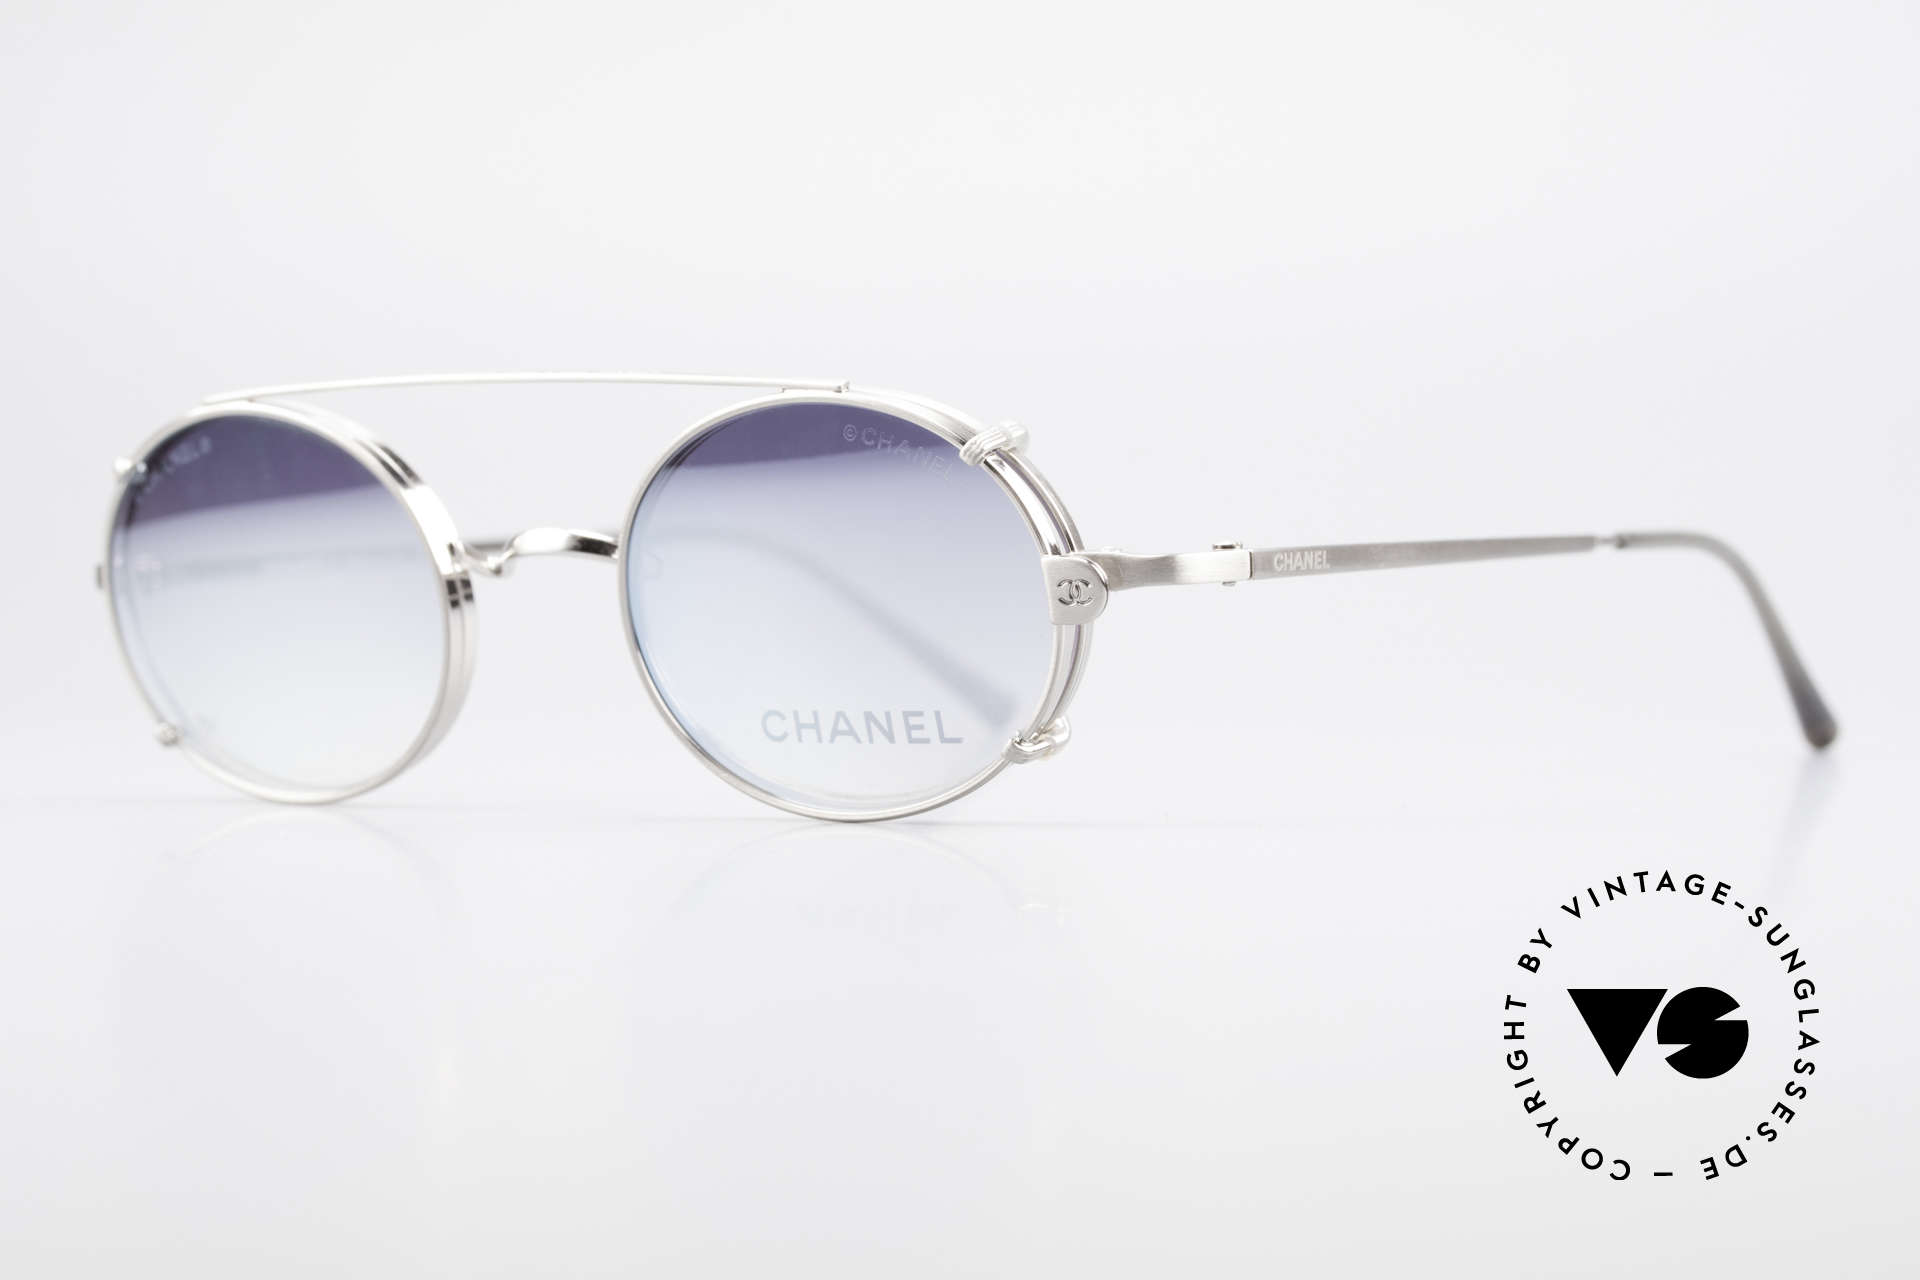 Chanel 2037 Oval Luxury Glasses Clip On, great combination of 'luxury lifestyle' & functionality, Made for Men and Women